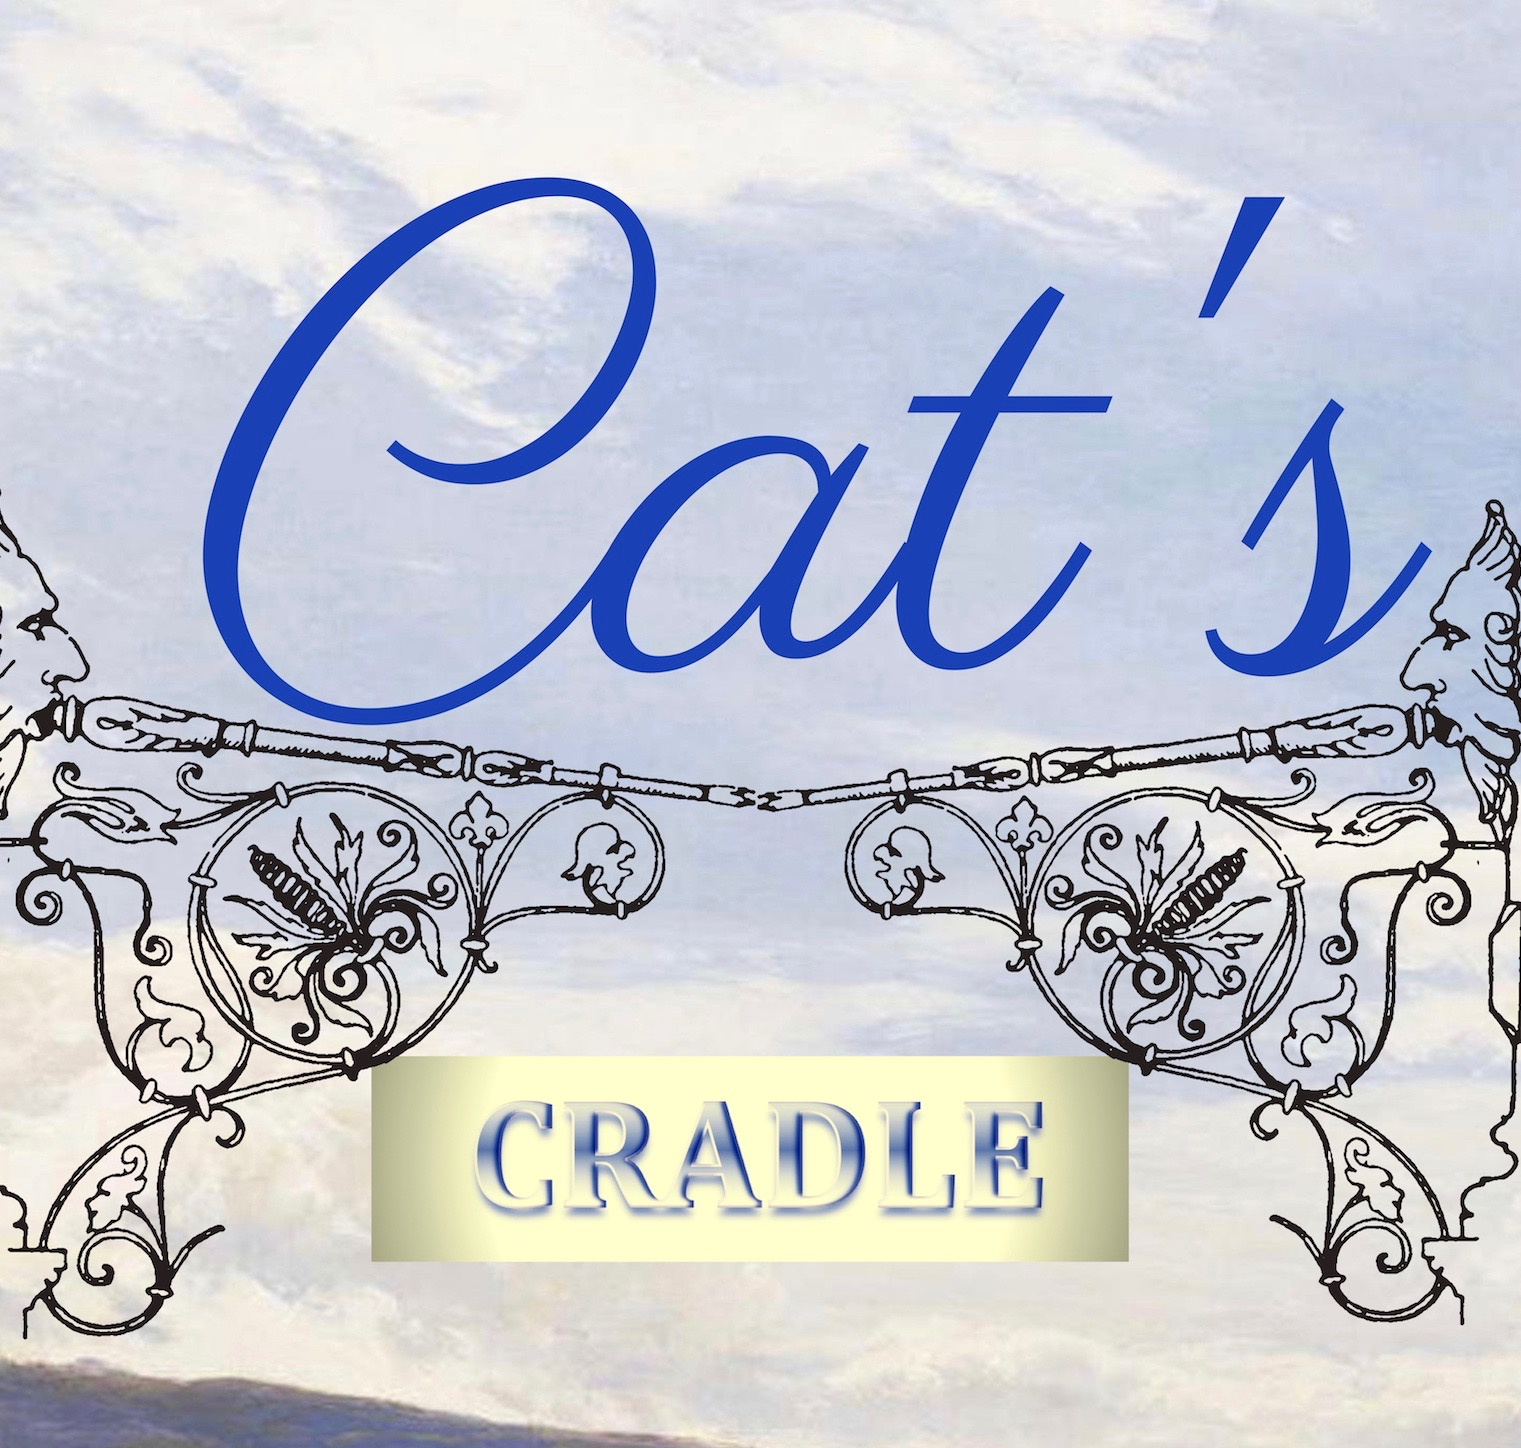 New editions of Cat Royal books